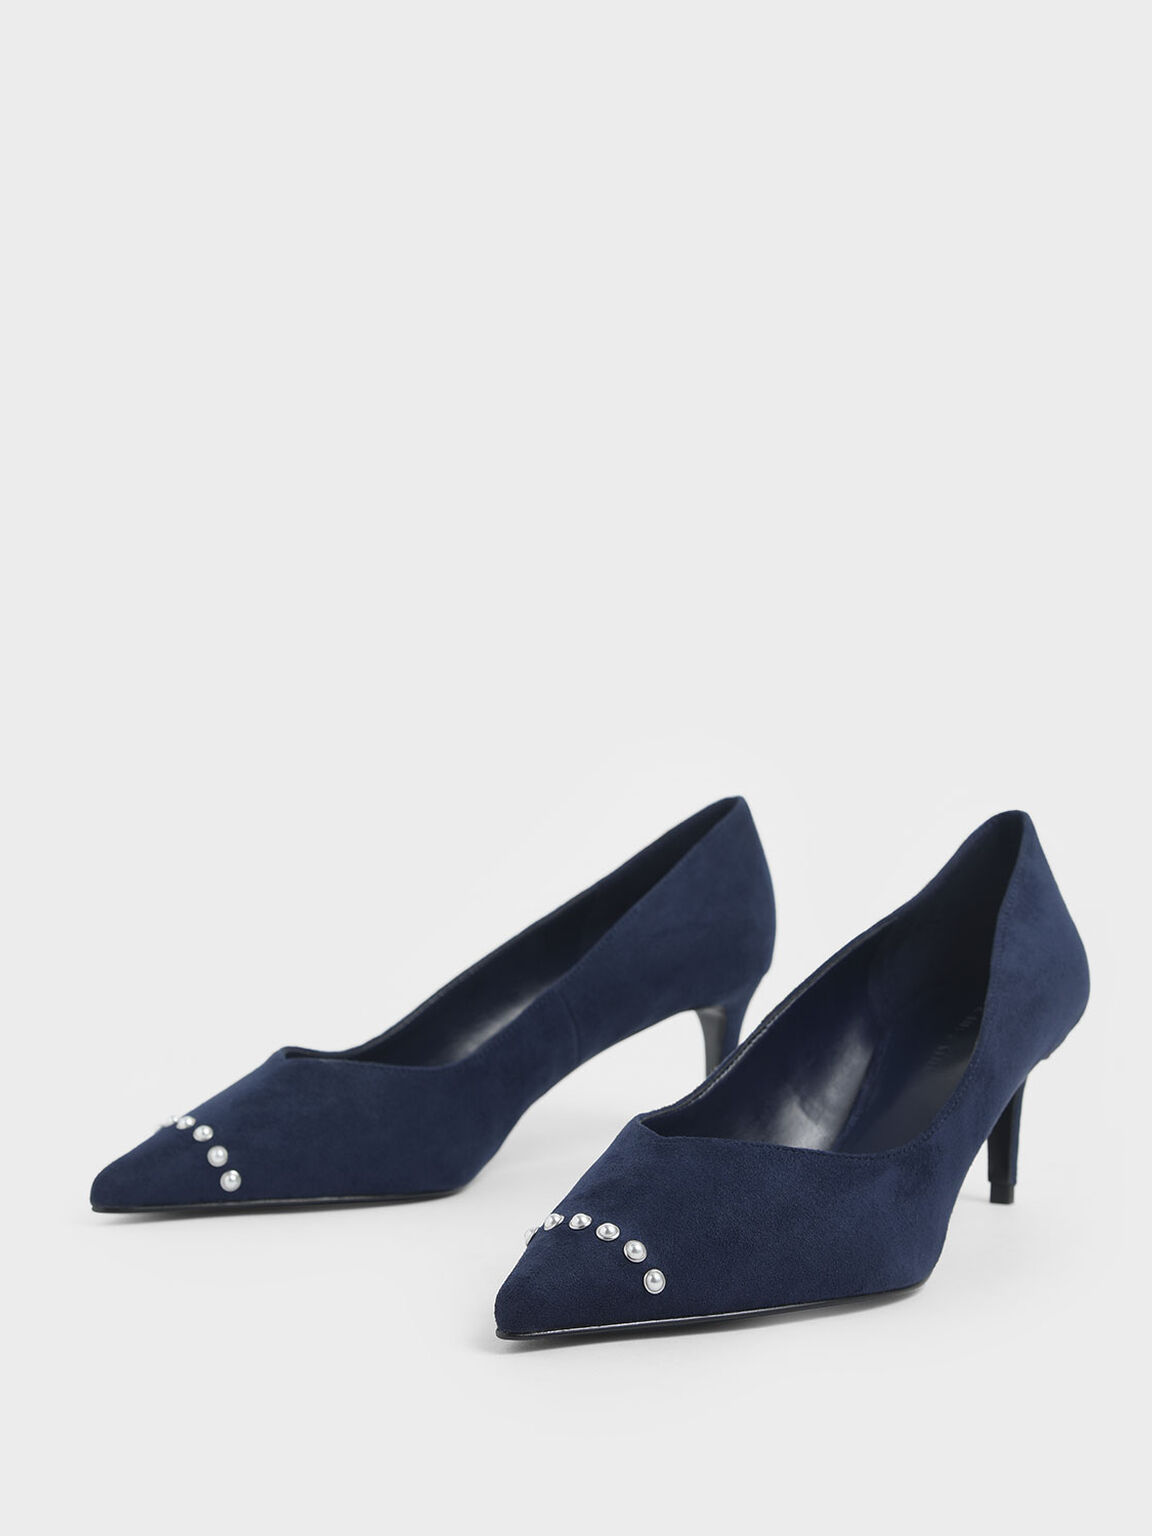 Embellished Trim Pointed Toe Textured Pumps, Dark Blue, hi-res